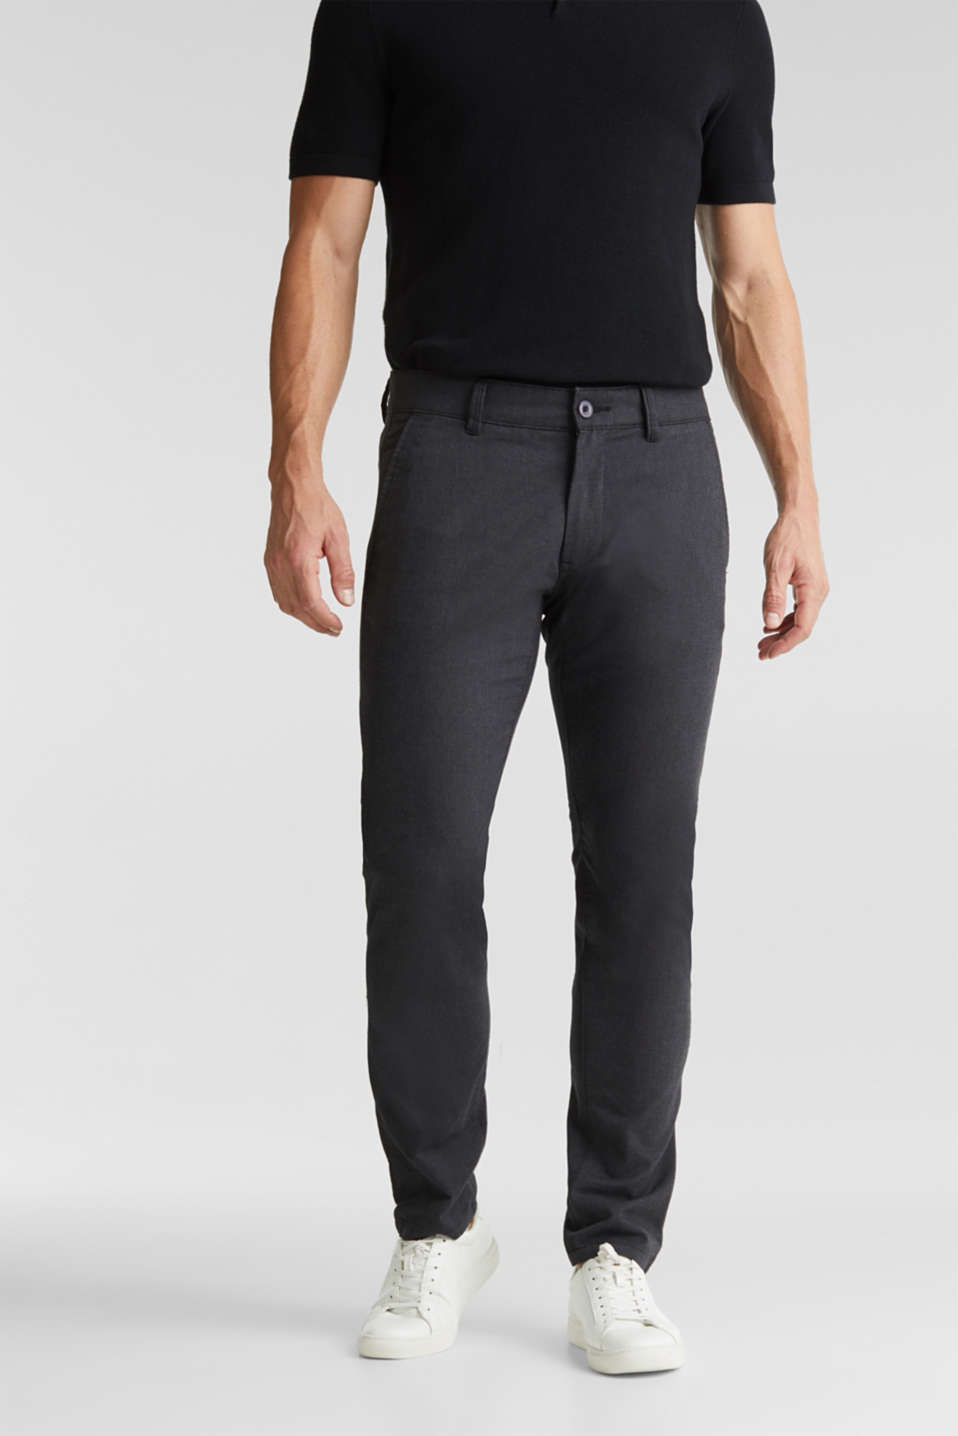 Esprit - Stretch twill trousers with a belt